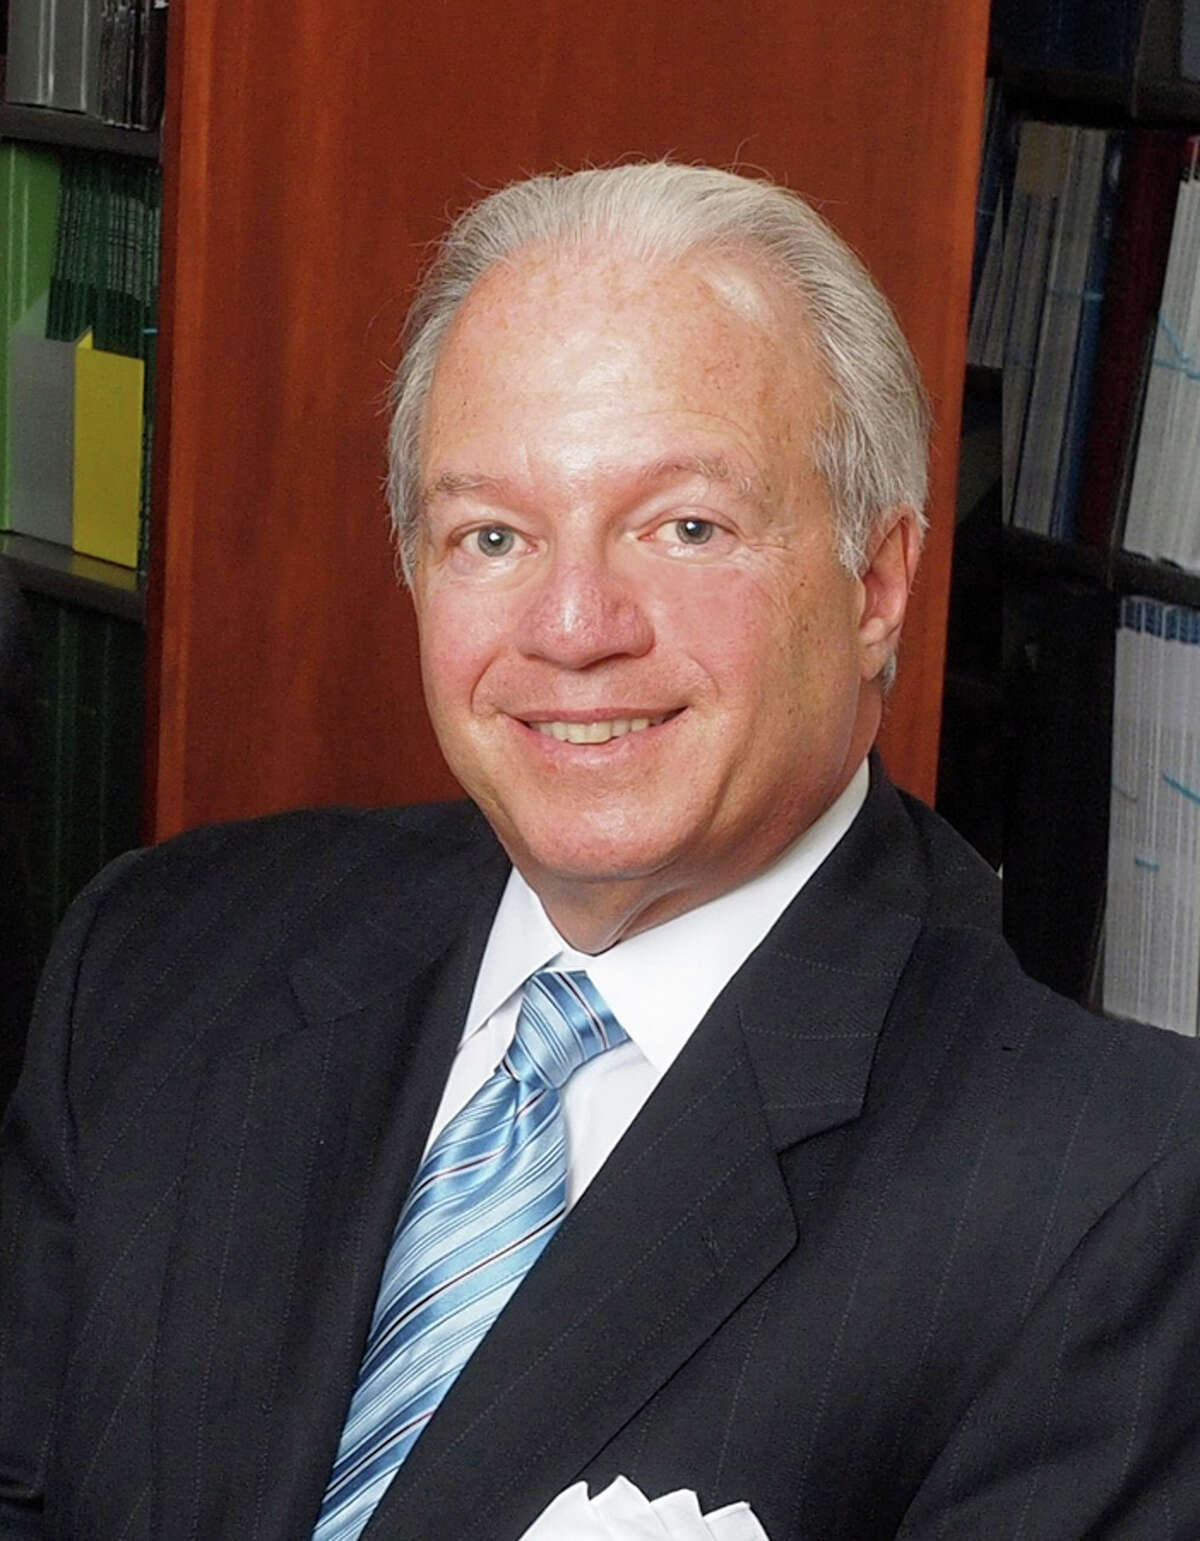 Greenwich Hospital President and CEO Frank Corvino